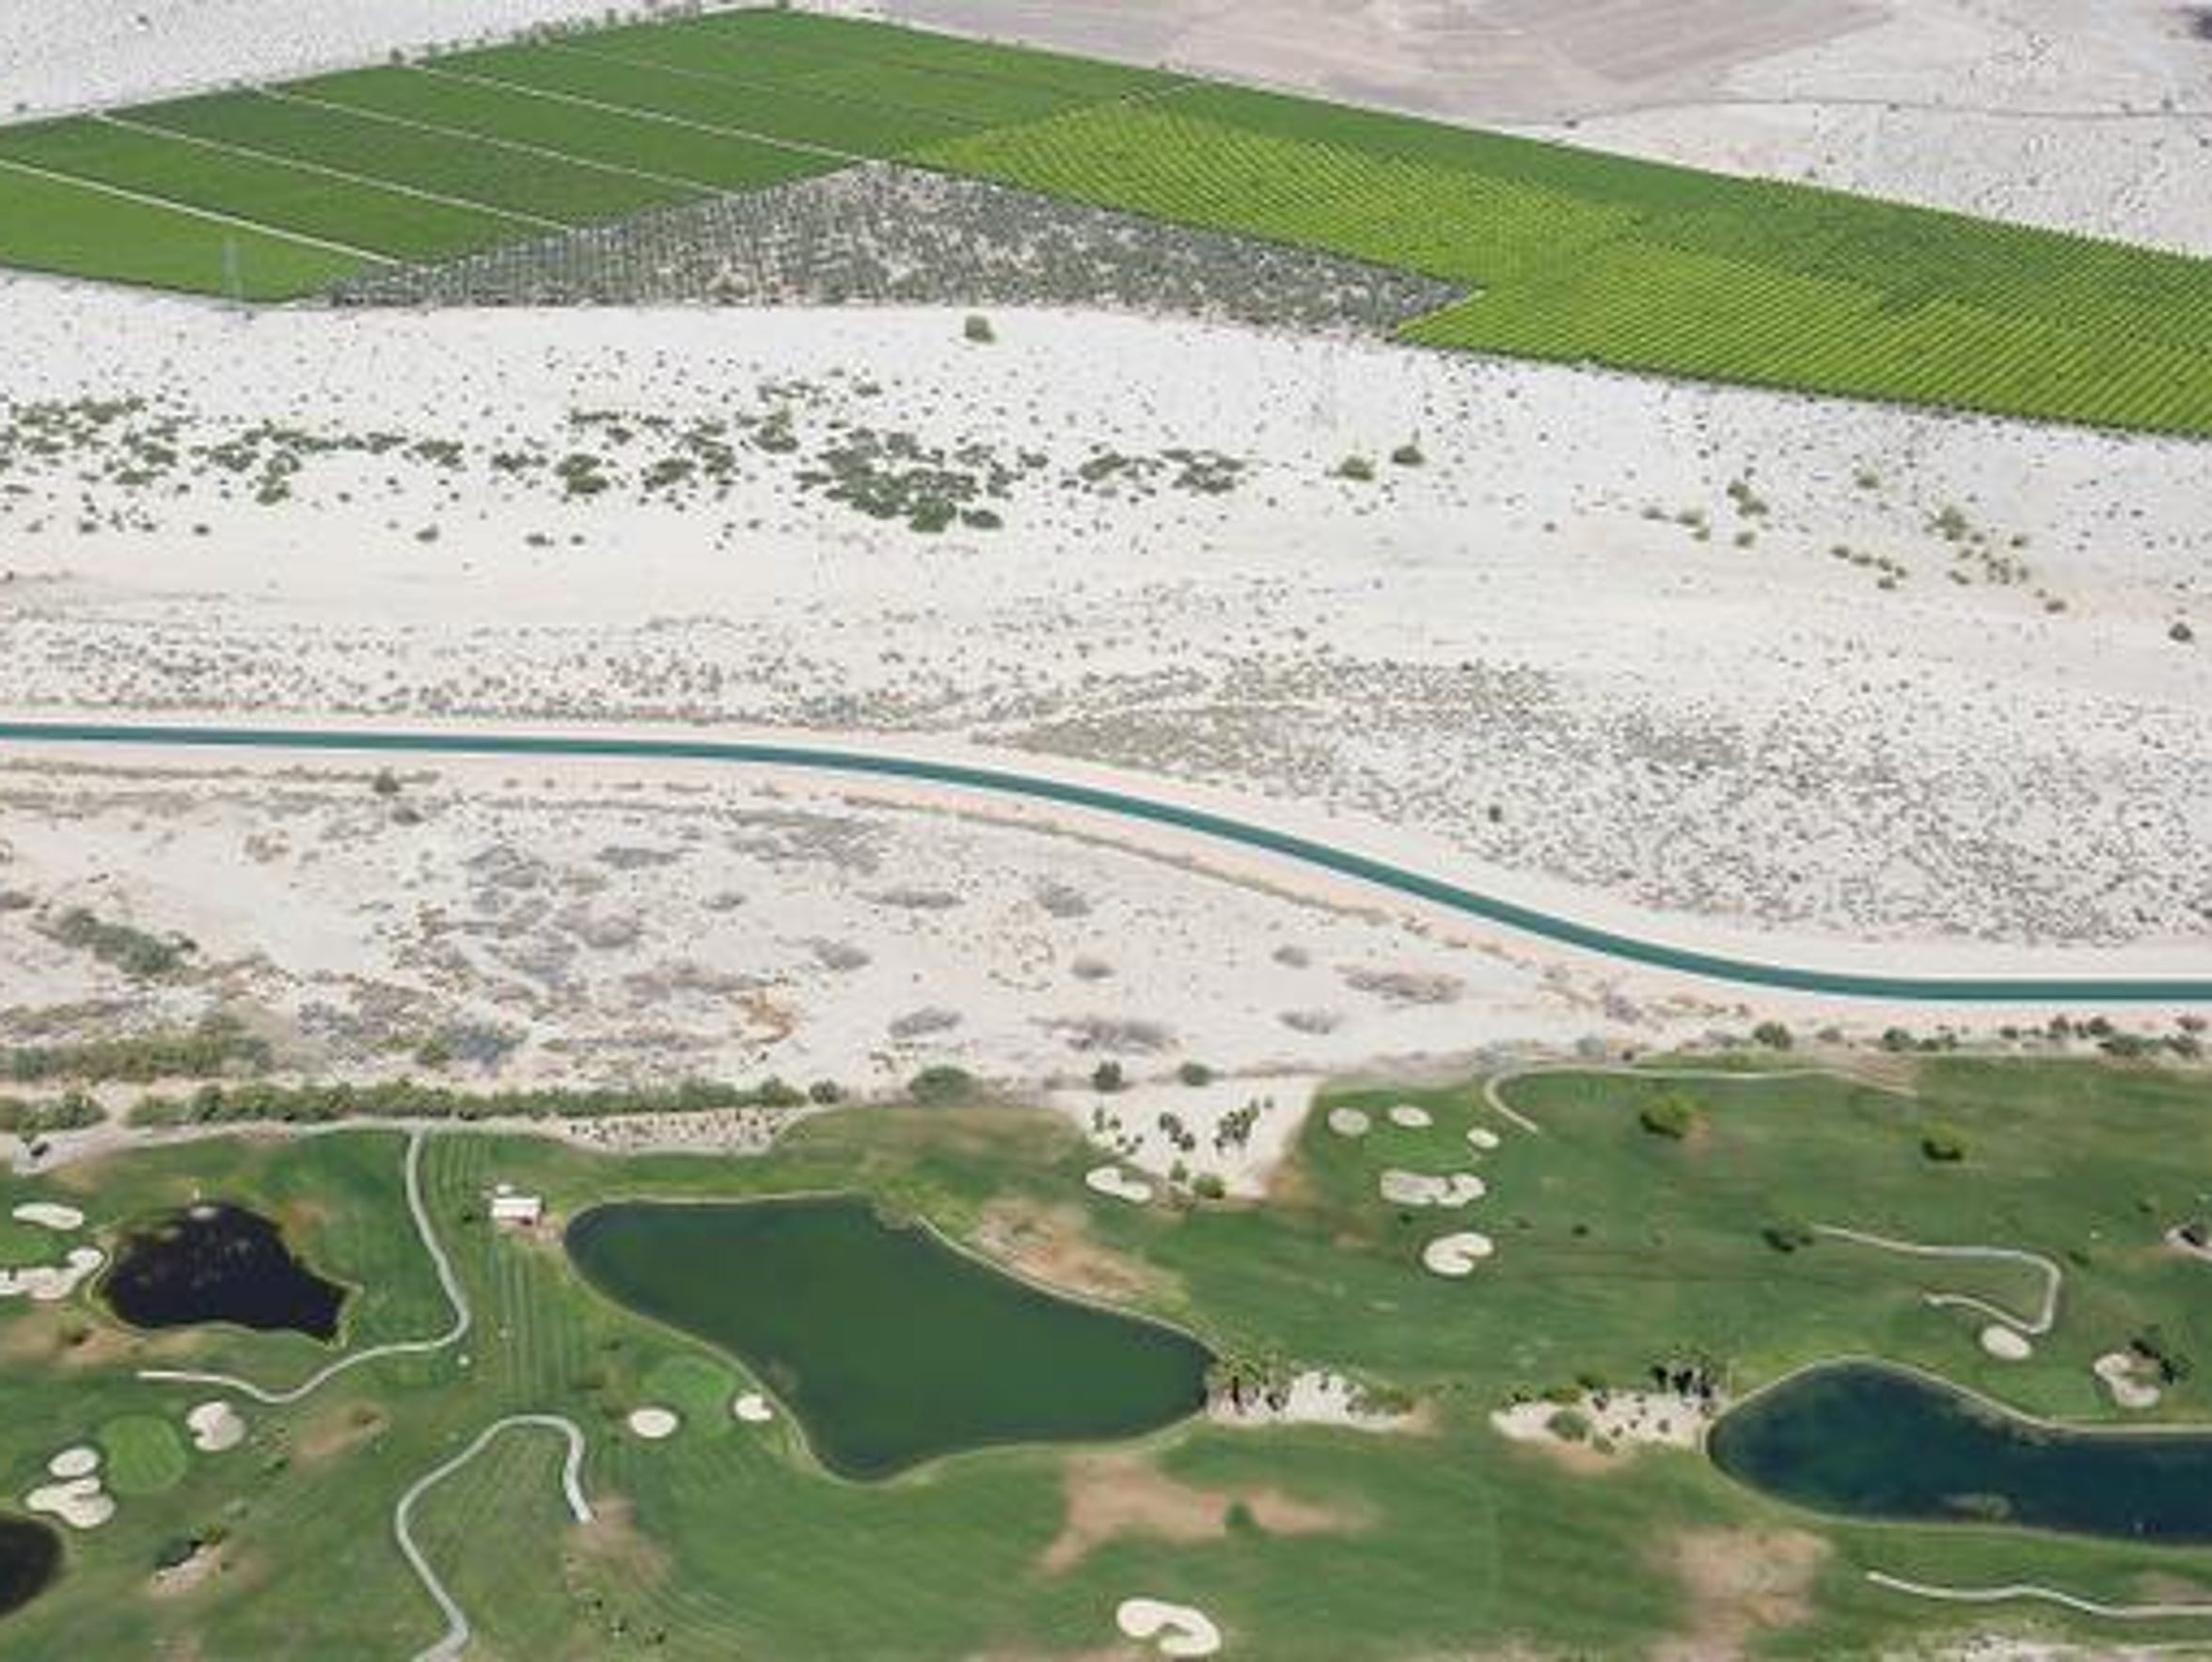 The Coachella Canal runs through open desert between